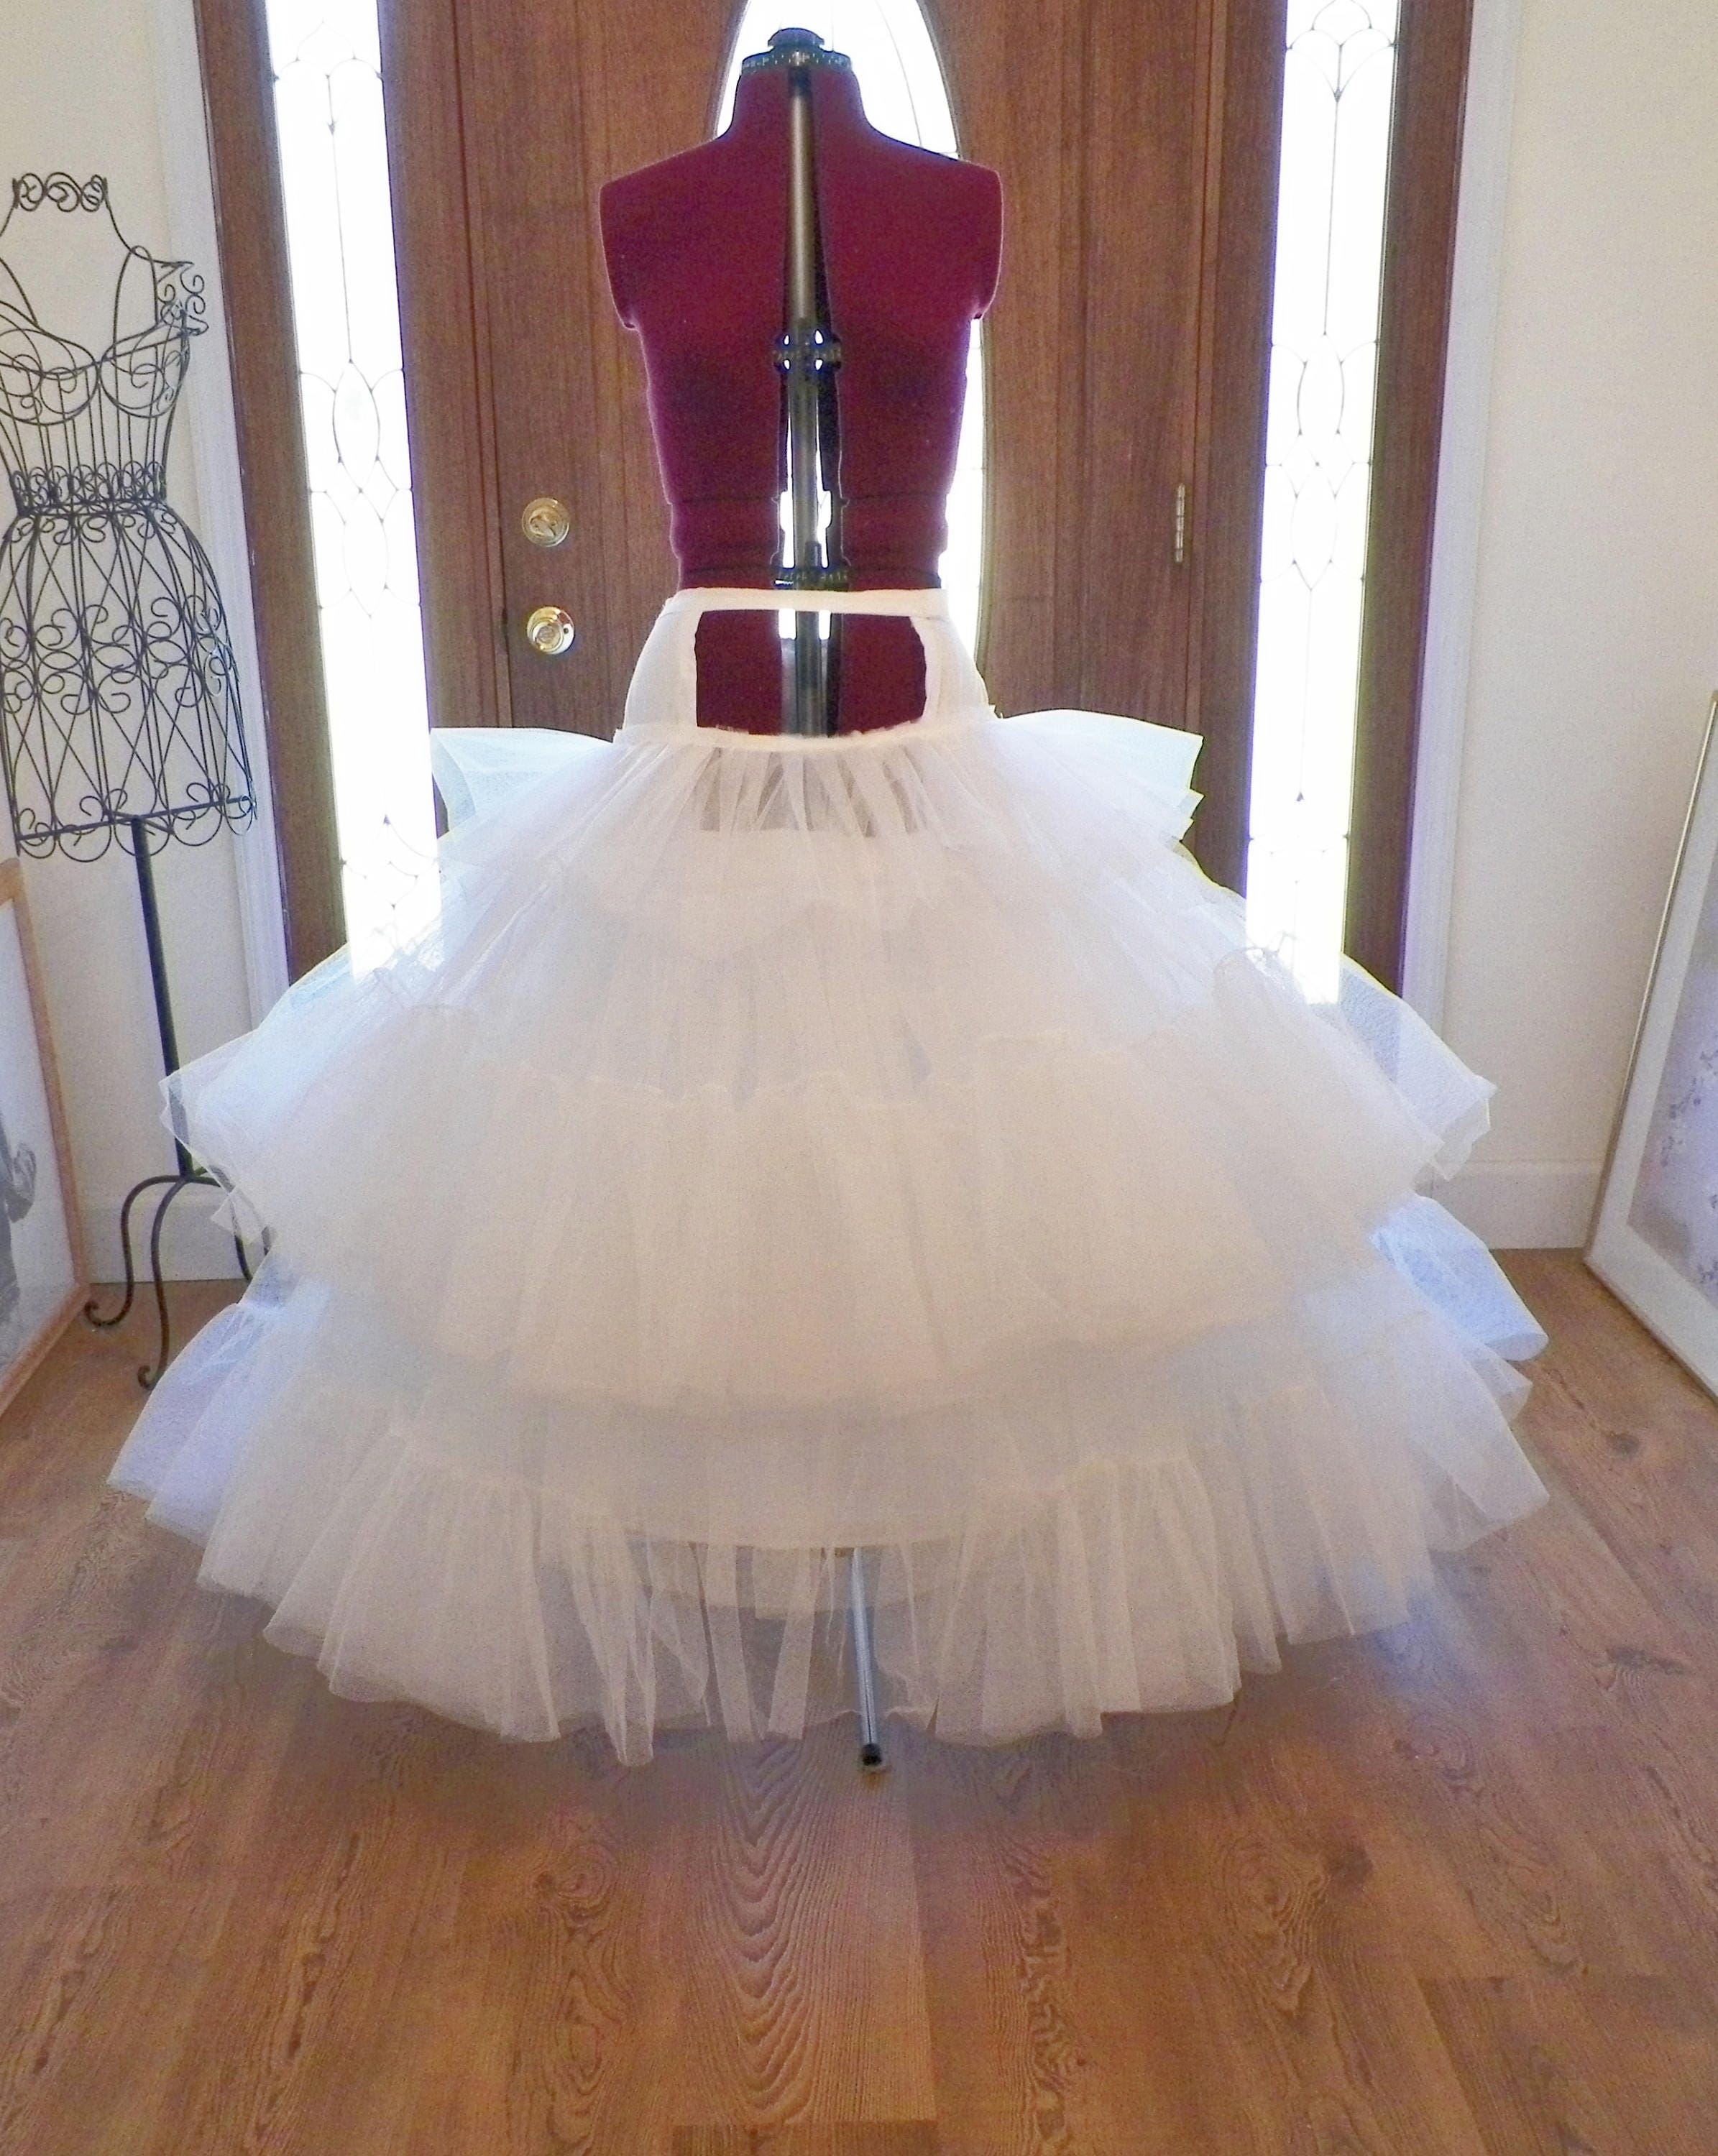 Big Fat Gypsy Wedding Dress, Gypsy Wedding Dress, Wedding Dress ...